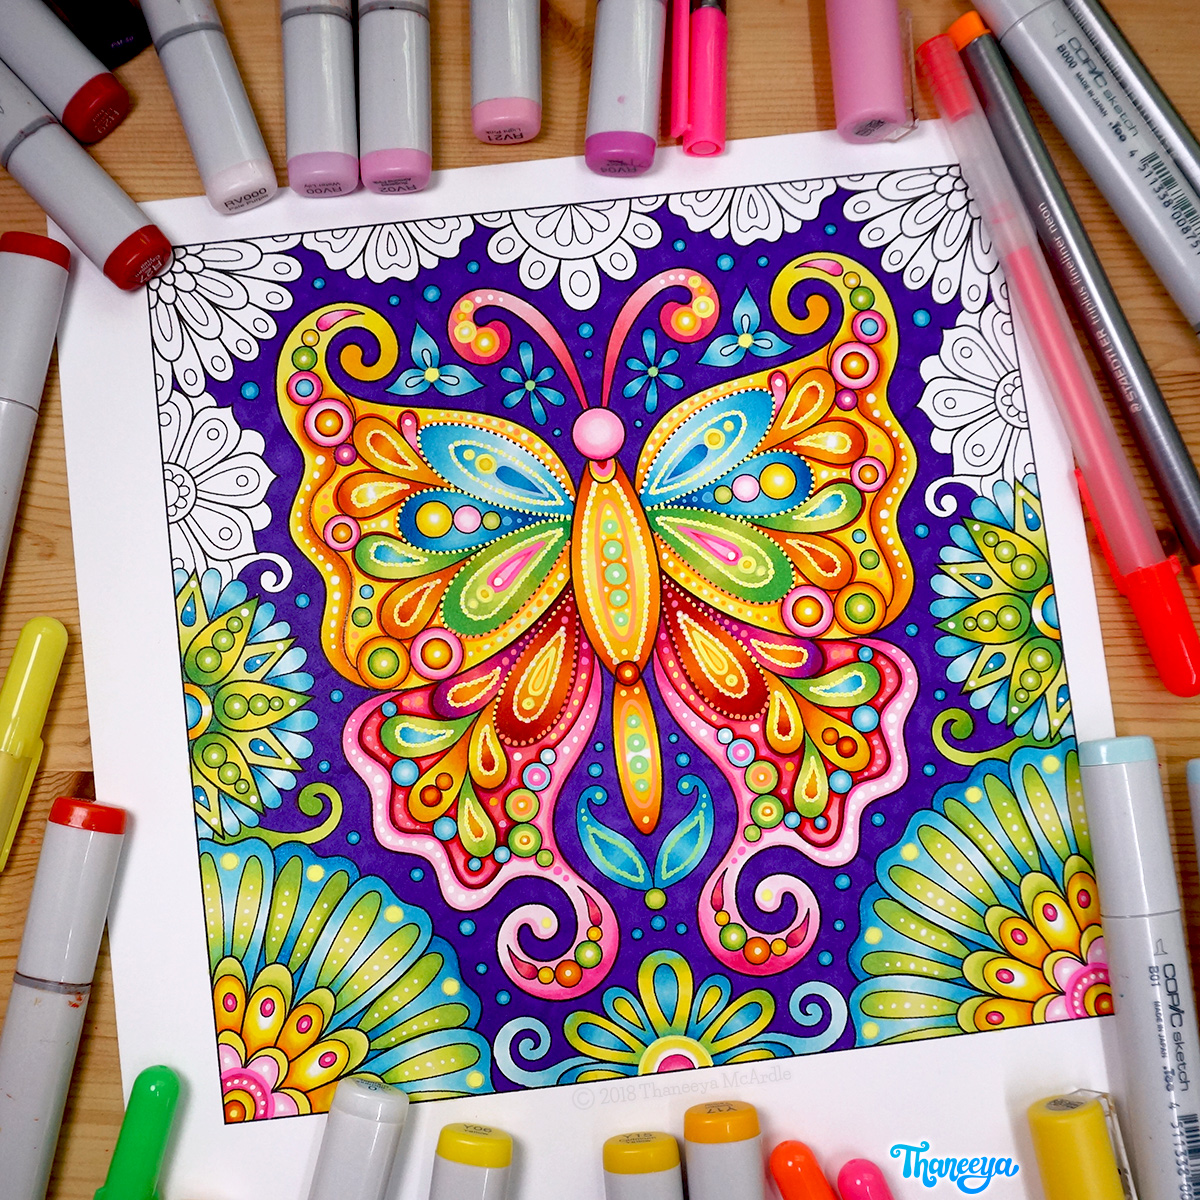 Butterfly coloring page by Thaneeya McArdle